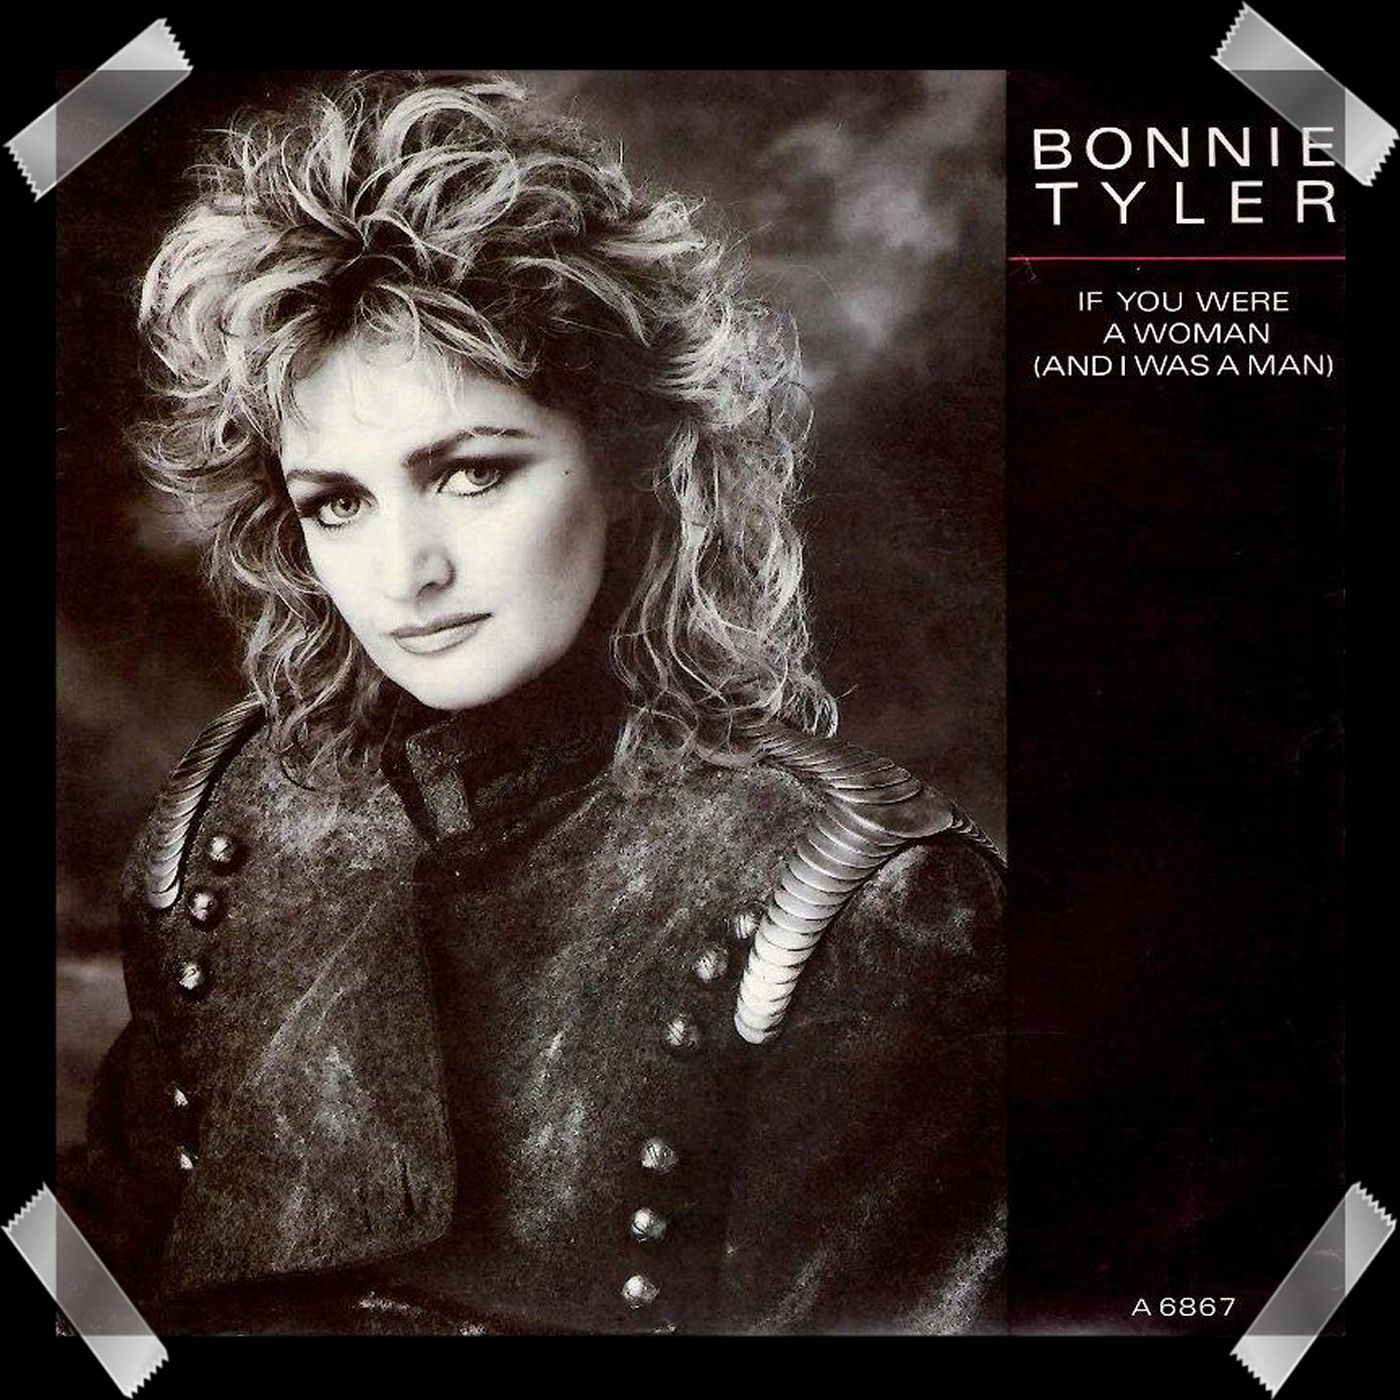 41. Bonnie Tyler ‎– If You Were A Woman (And I Was A Man)